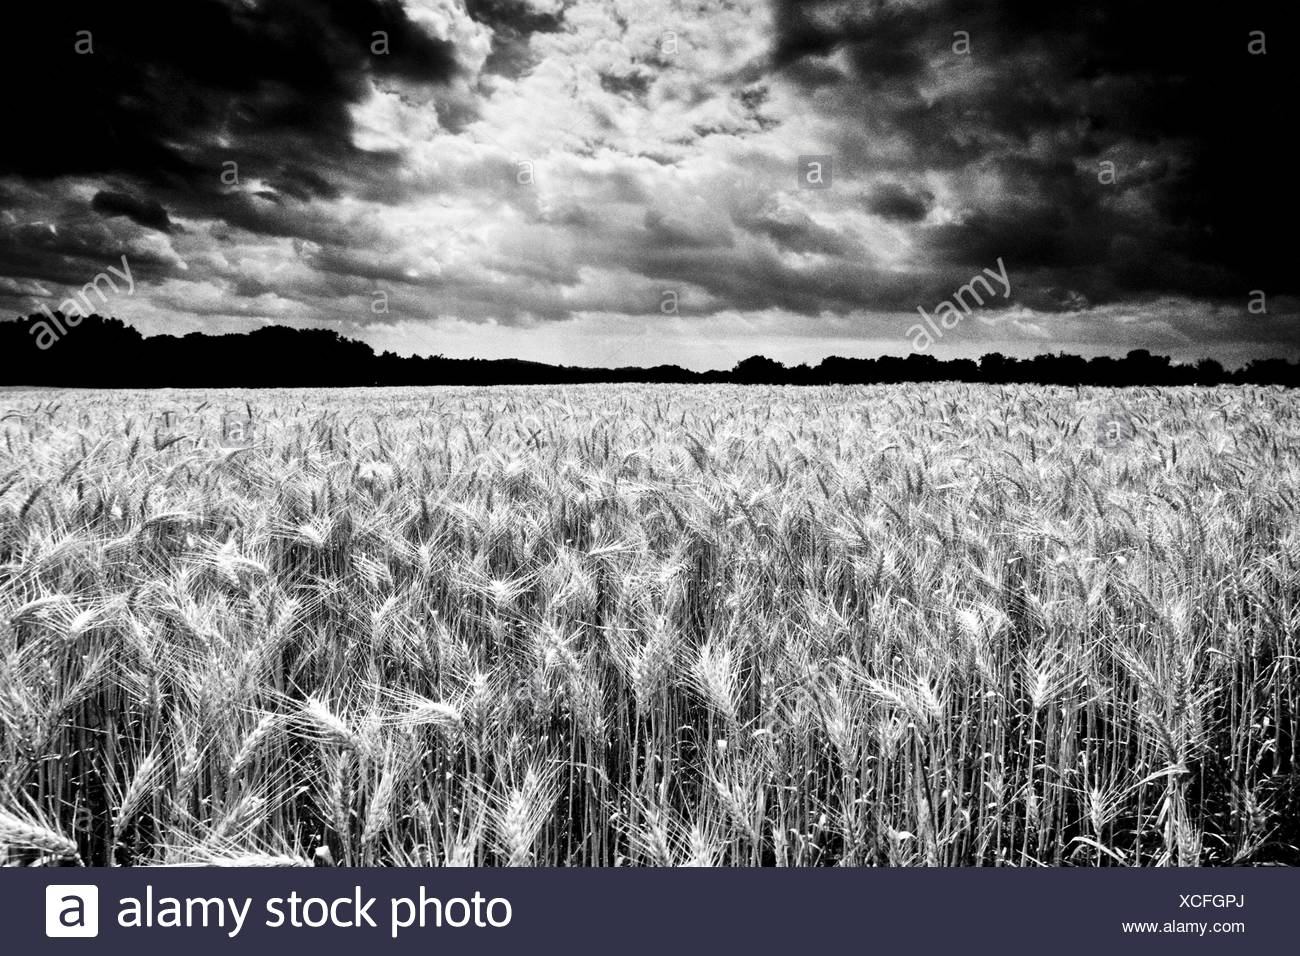 Wheat field ripe for harvest grain field dramatic clouds thunderclouds manipulated shot